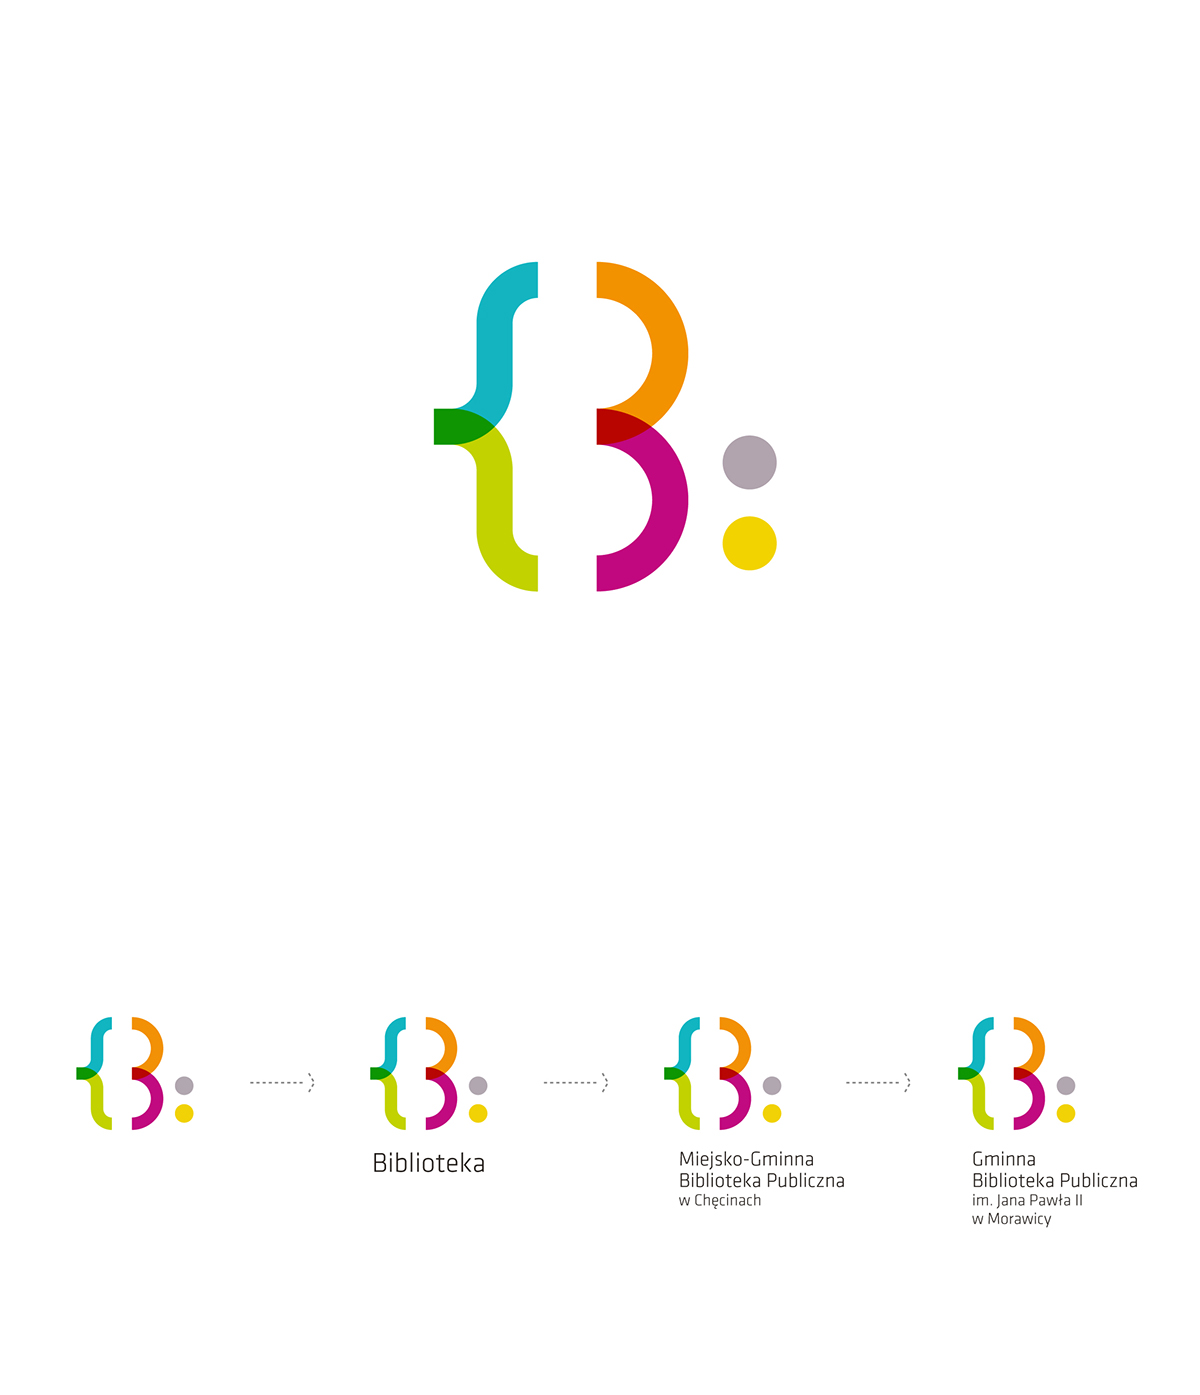 Visual Identity For Public Libraries On Behance